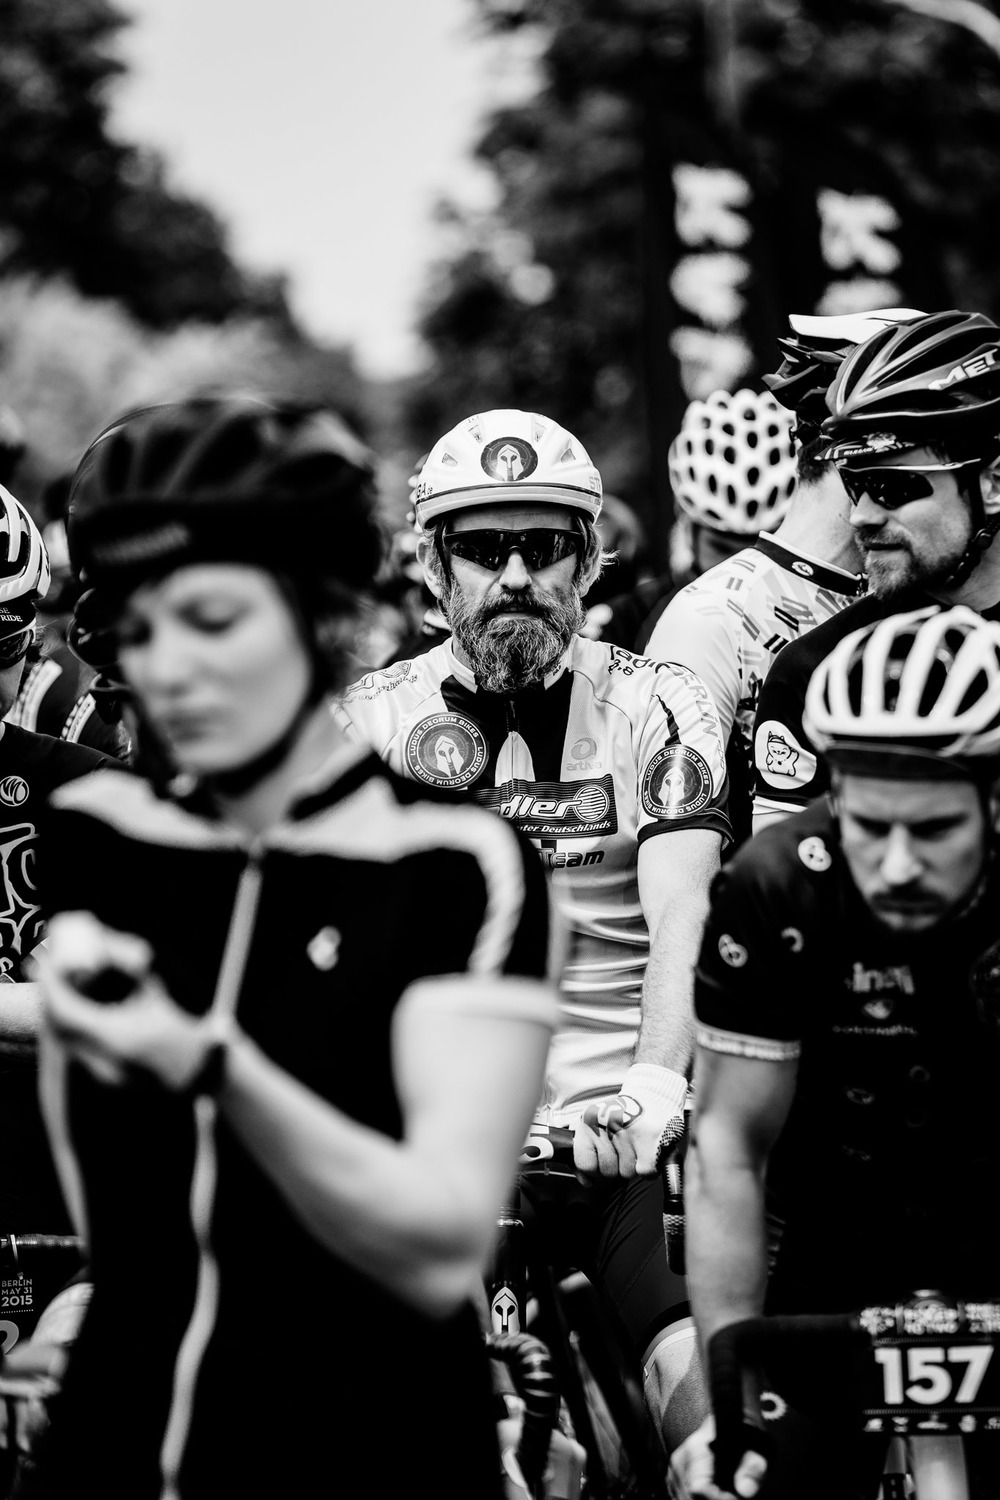 20150531_LEXIUS_RAD_RACE_FIXED42_0009.jpg